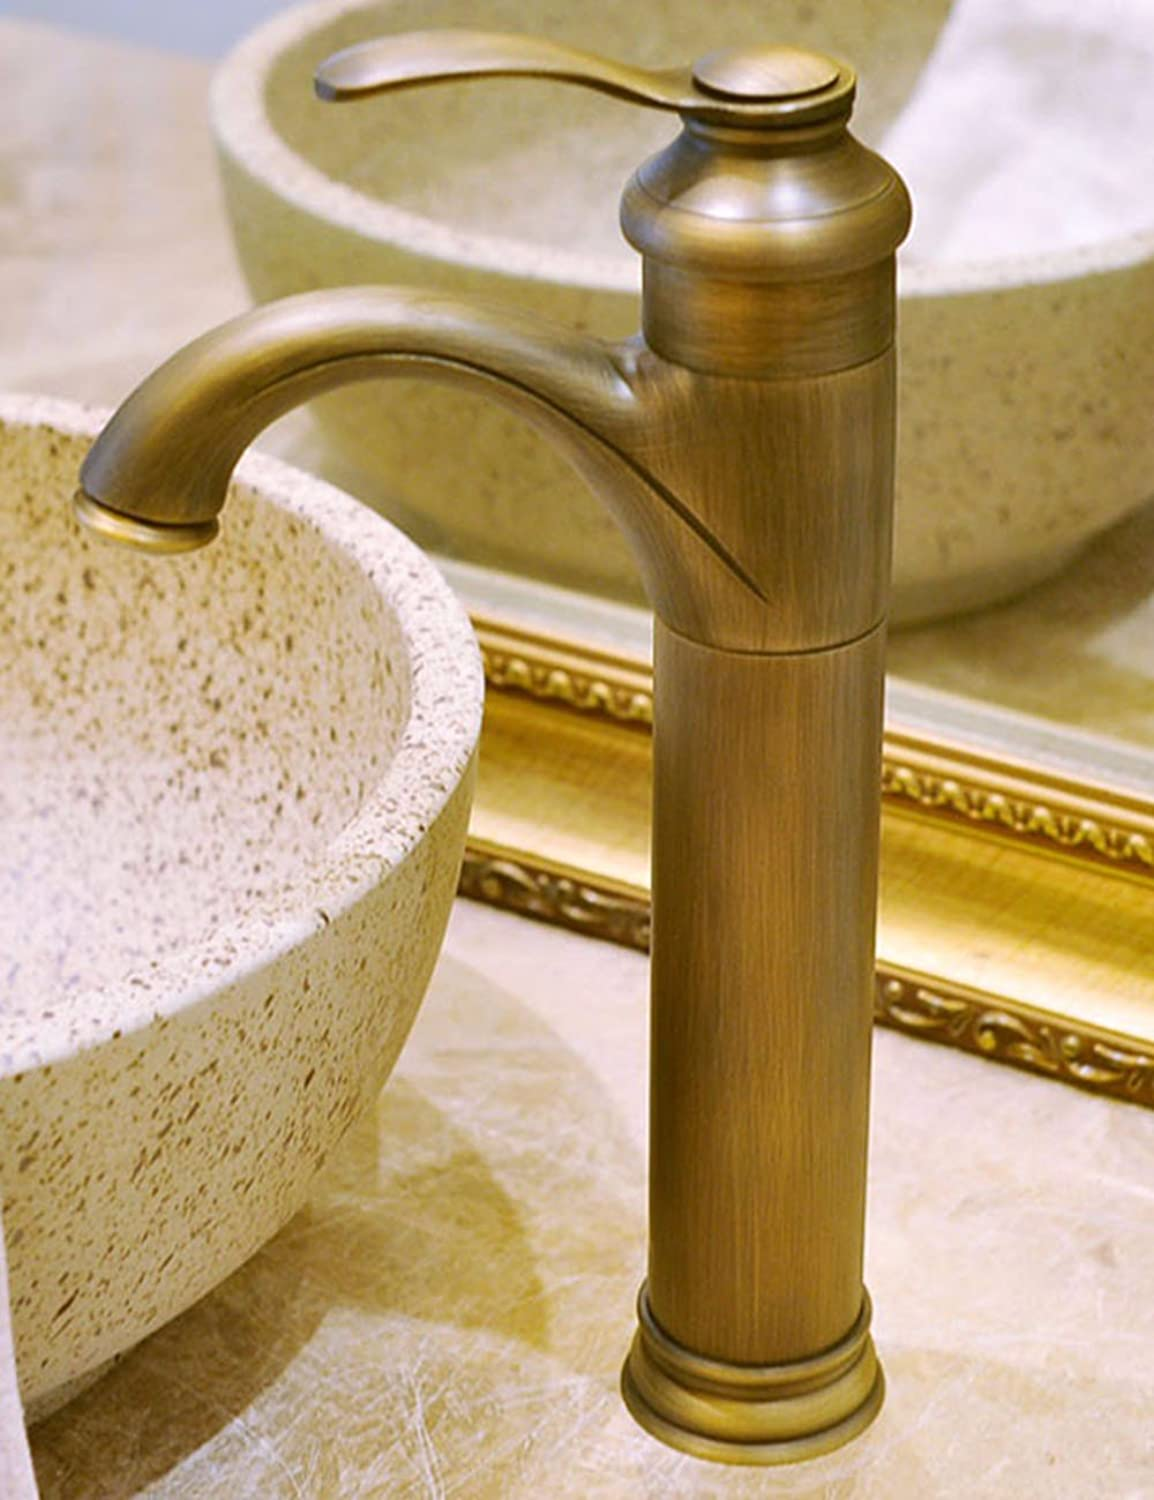 Hlluya Professional Sink Mixer Tap Kitchen Faucet Antique faucets basin mixer is a fitting and cold water faucet bronze fittings